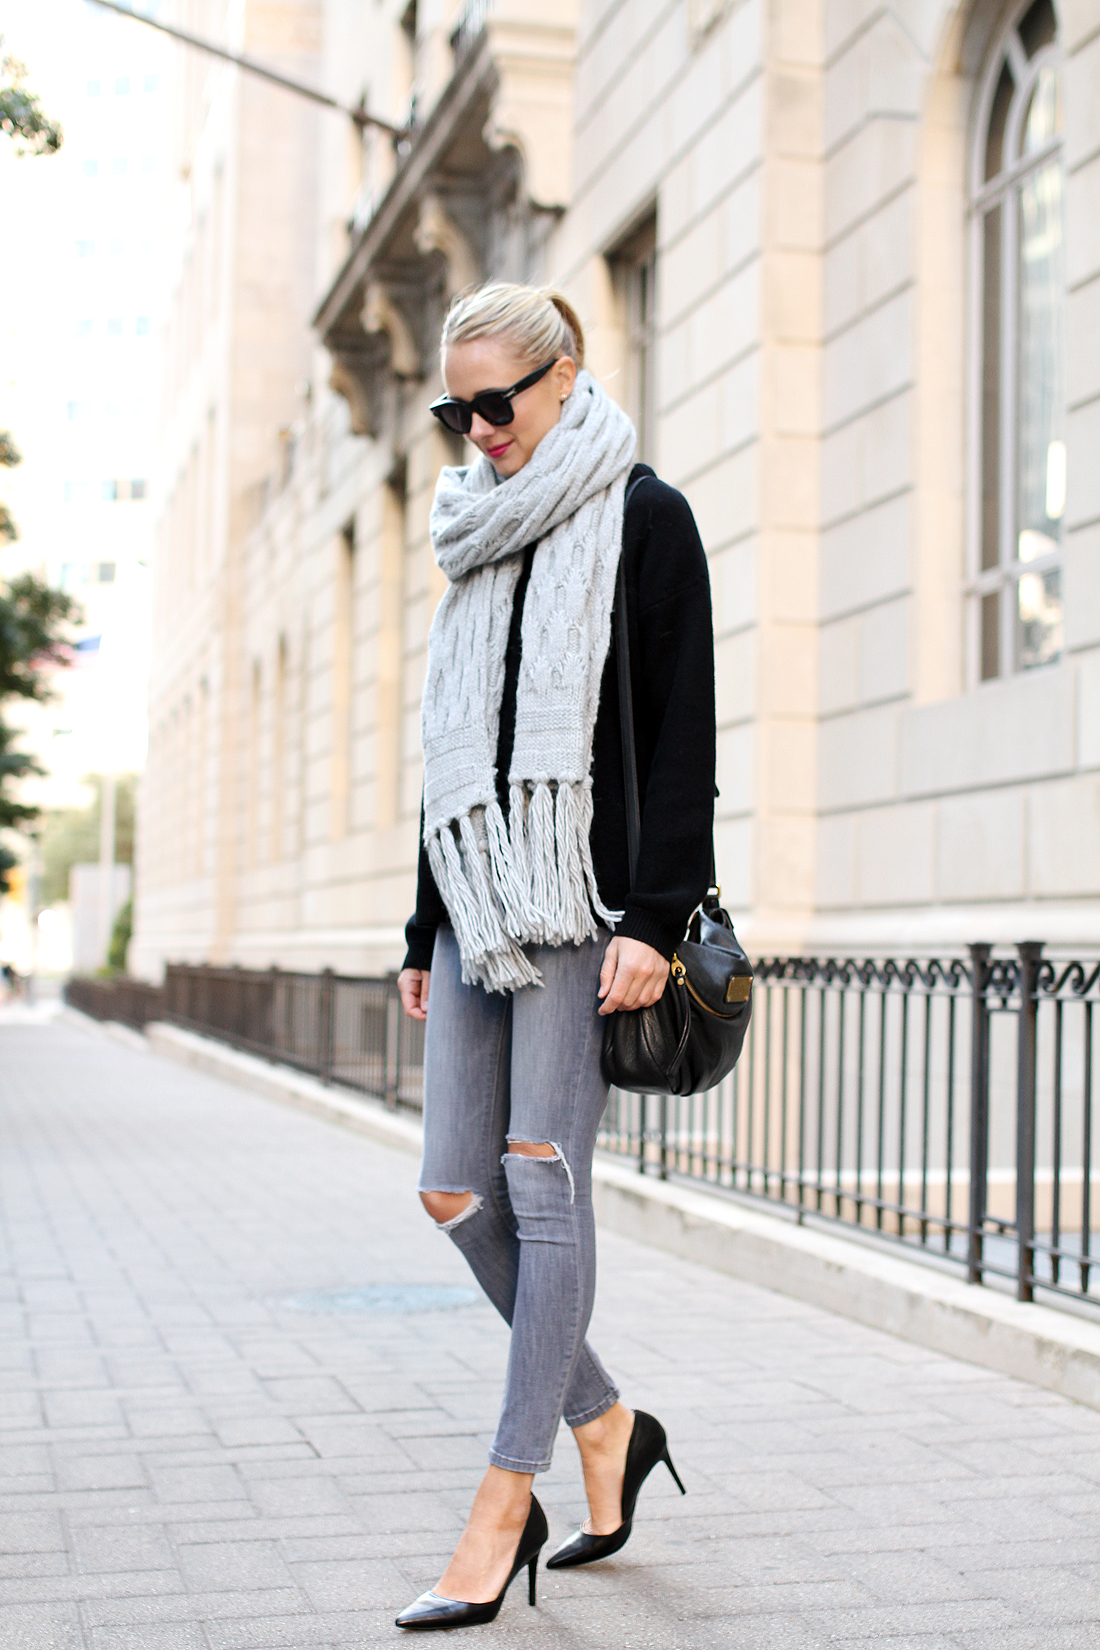 jackson jeans outfits fall cozy ripped sweater chic winter scarf fashionjackson grey celine skinny outfit pumps cute wear amy banana